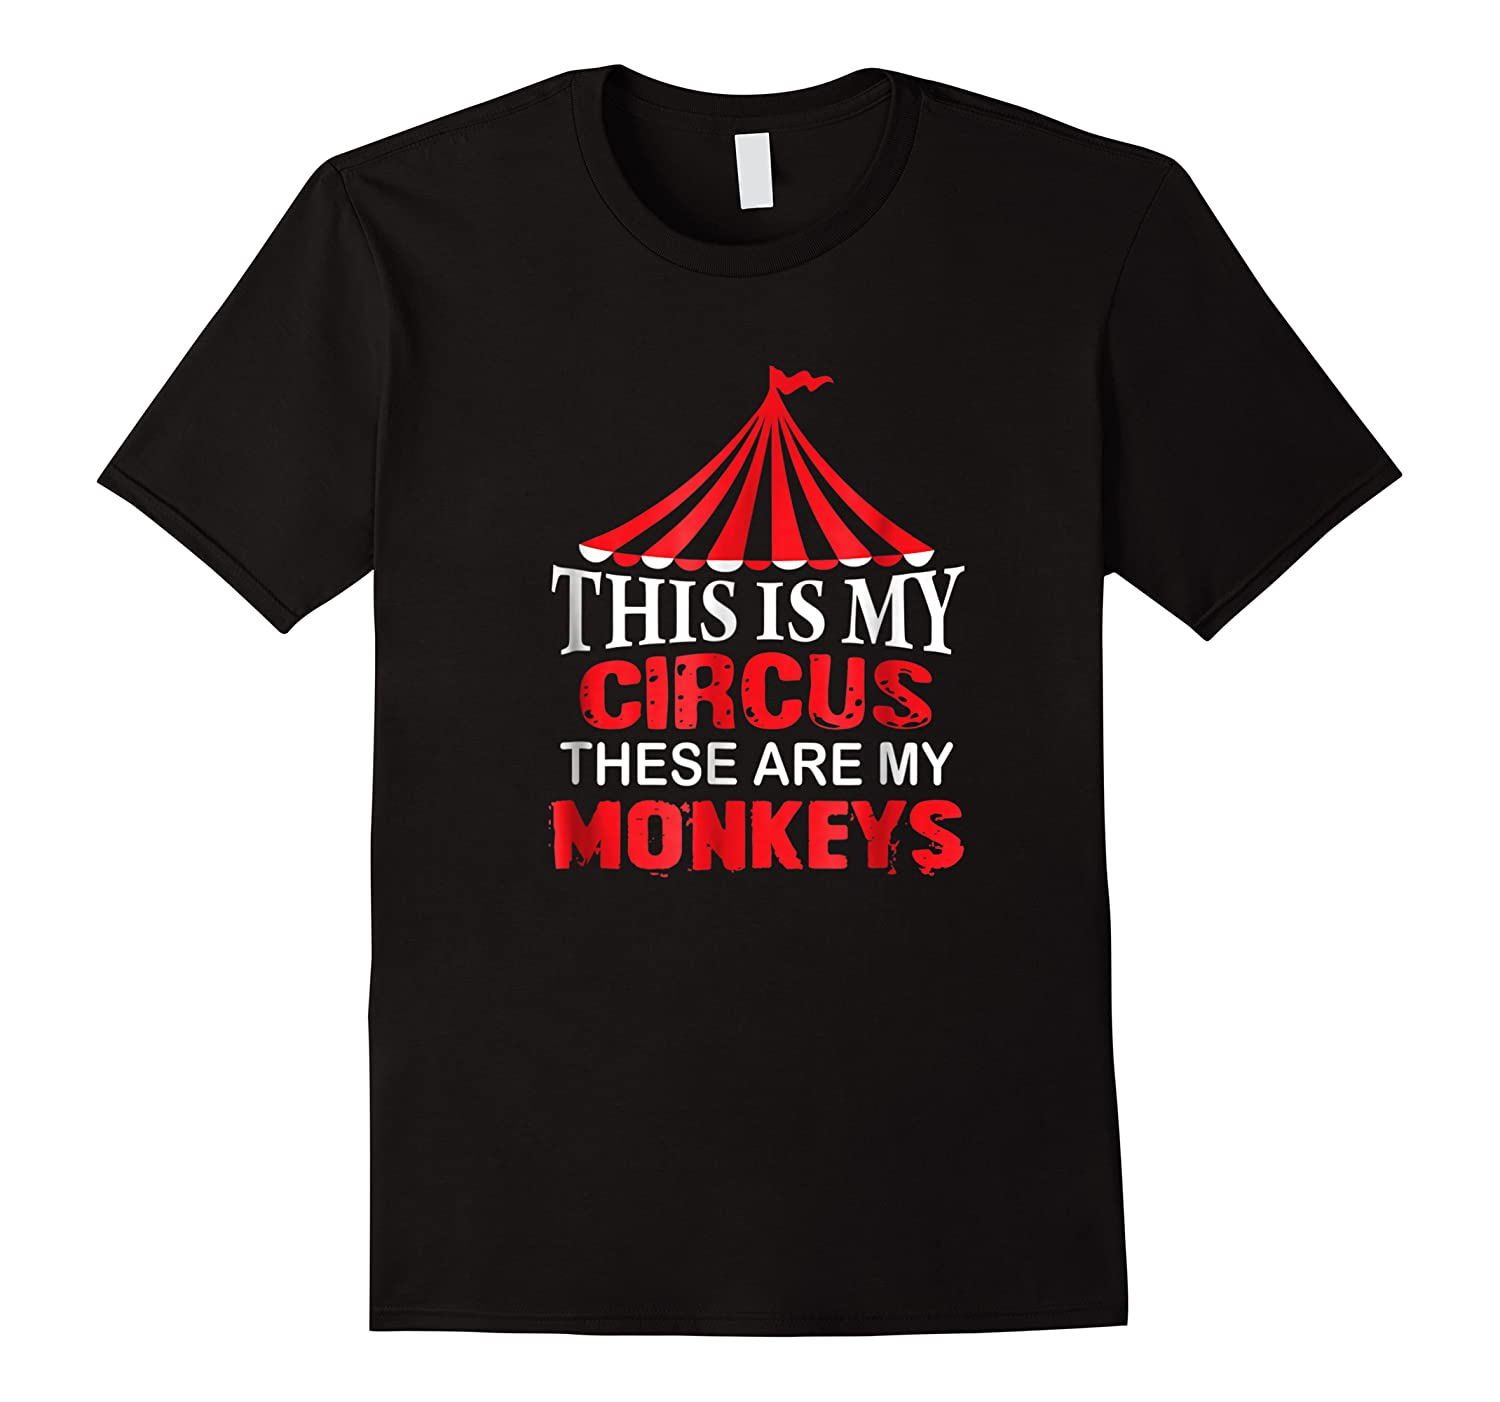 This Is My Circus These Are My Monkeys T Shirt, Family Fun